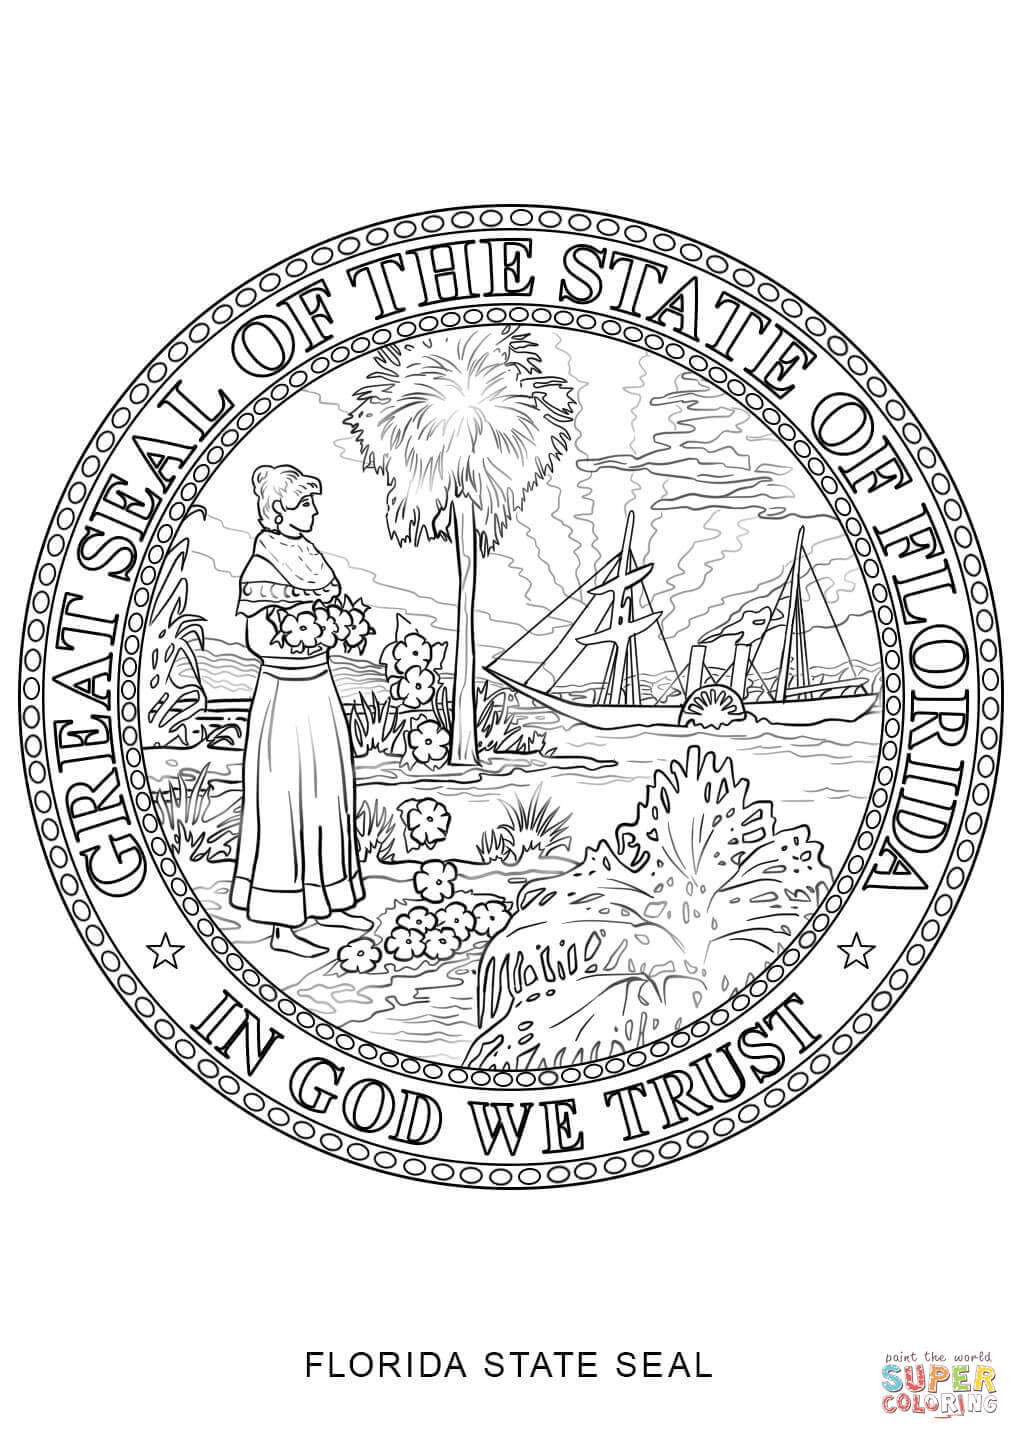 florida state flower florida state symbols coloring page free printable florida state flower